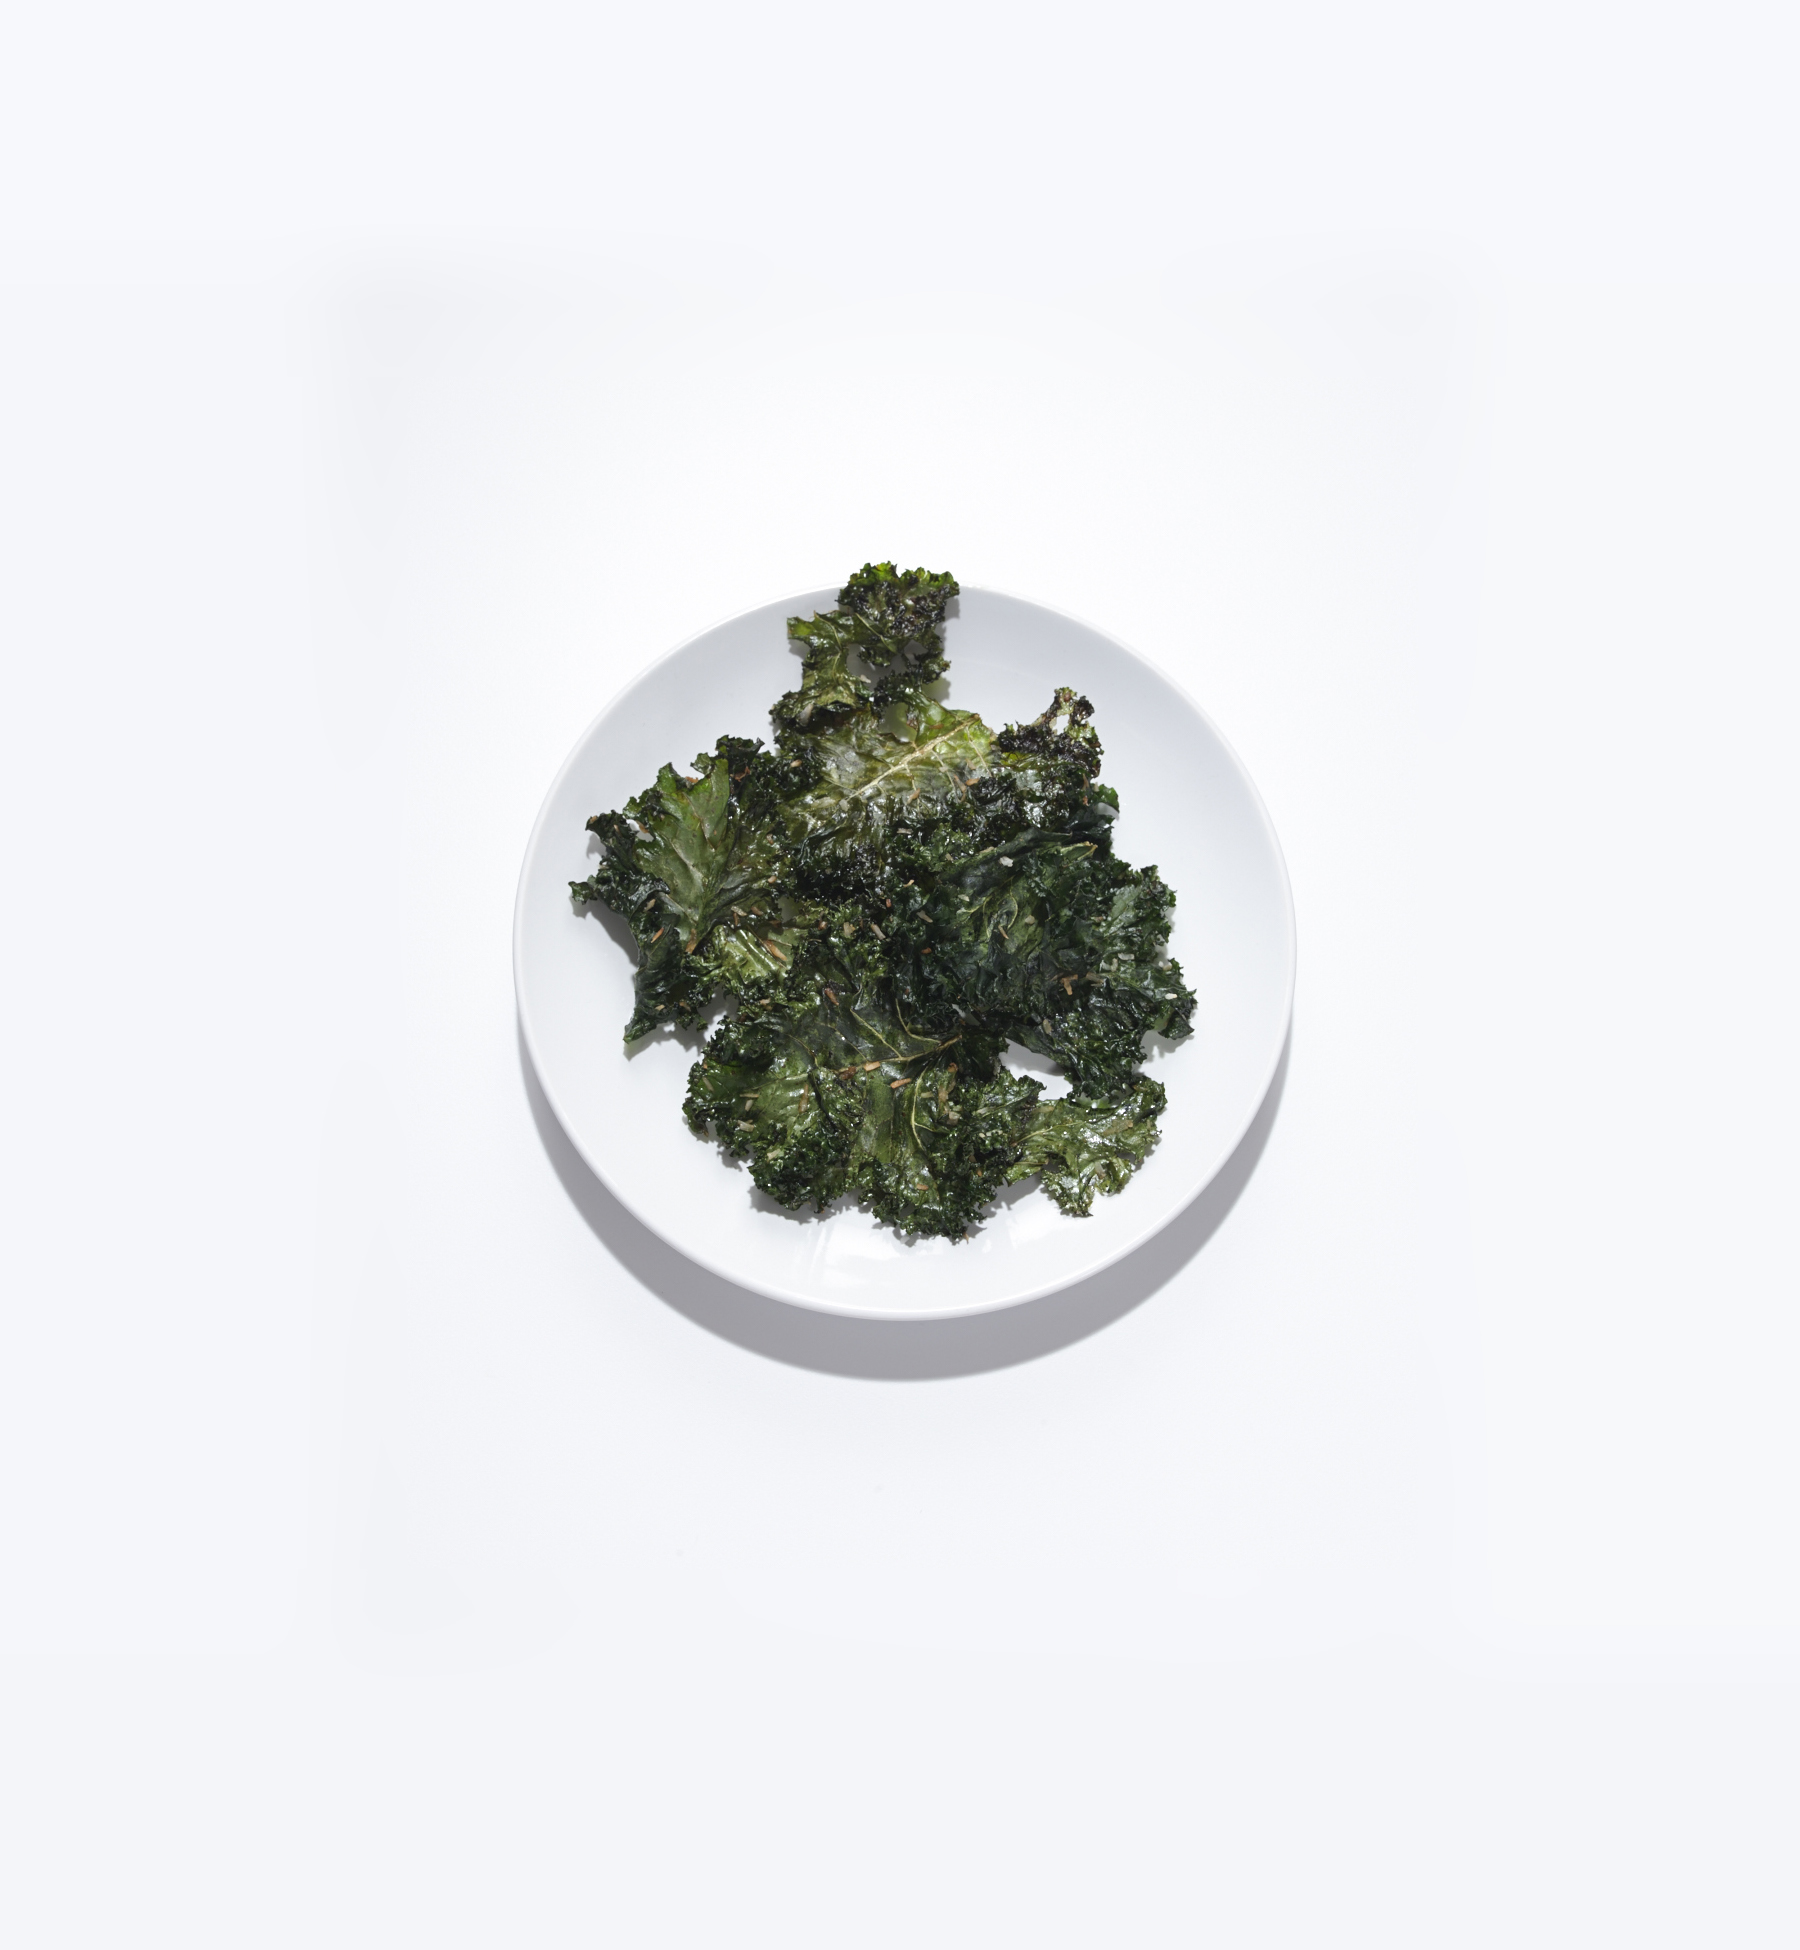 Soy and Coconut Kale Chips